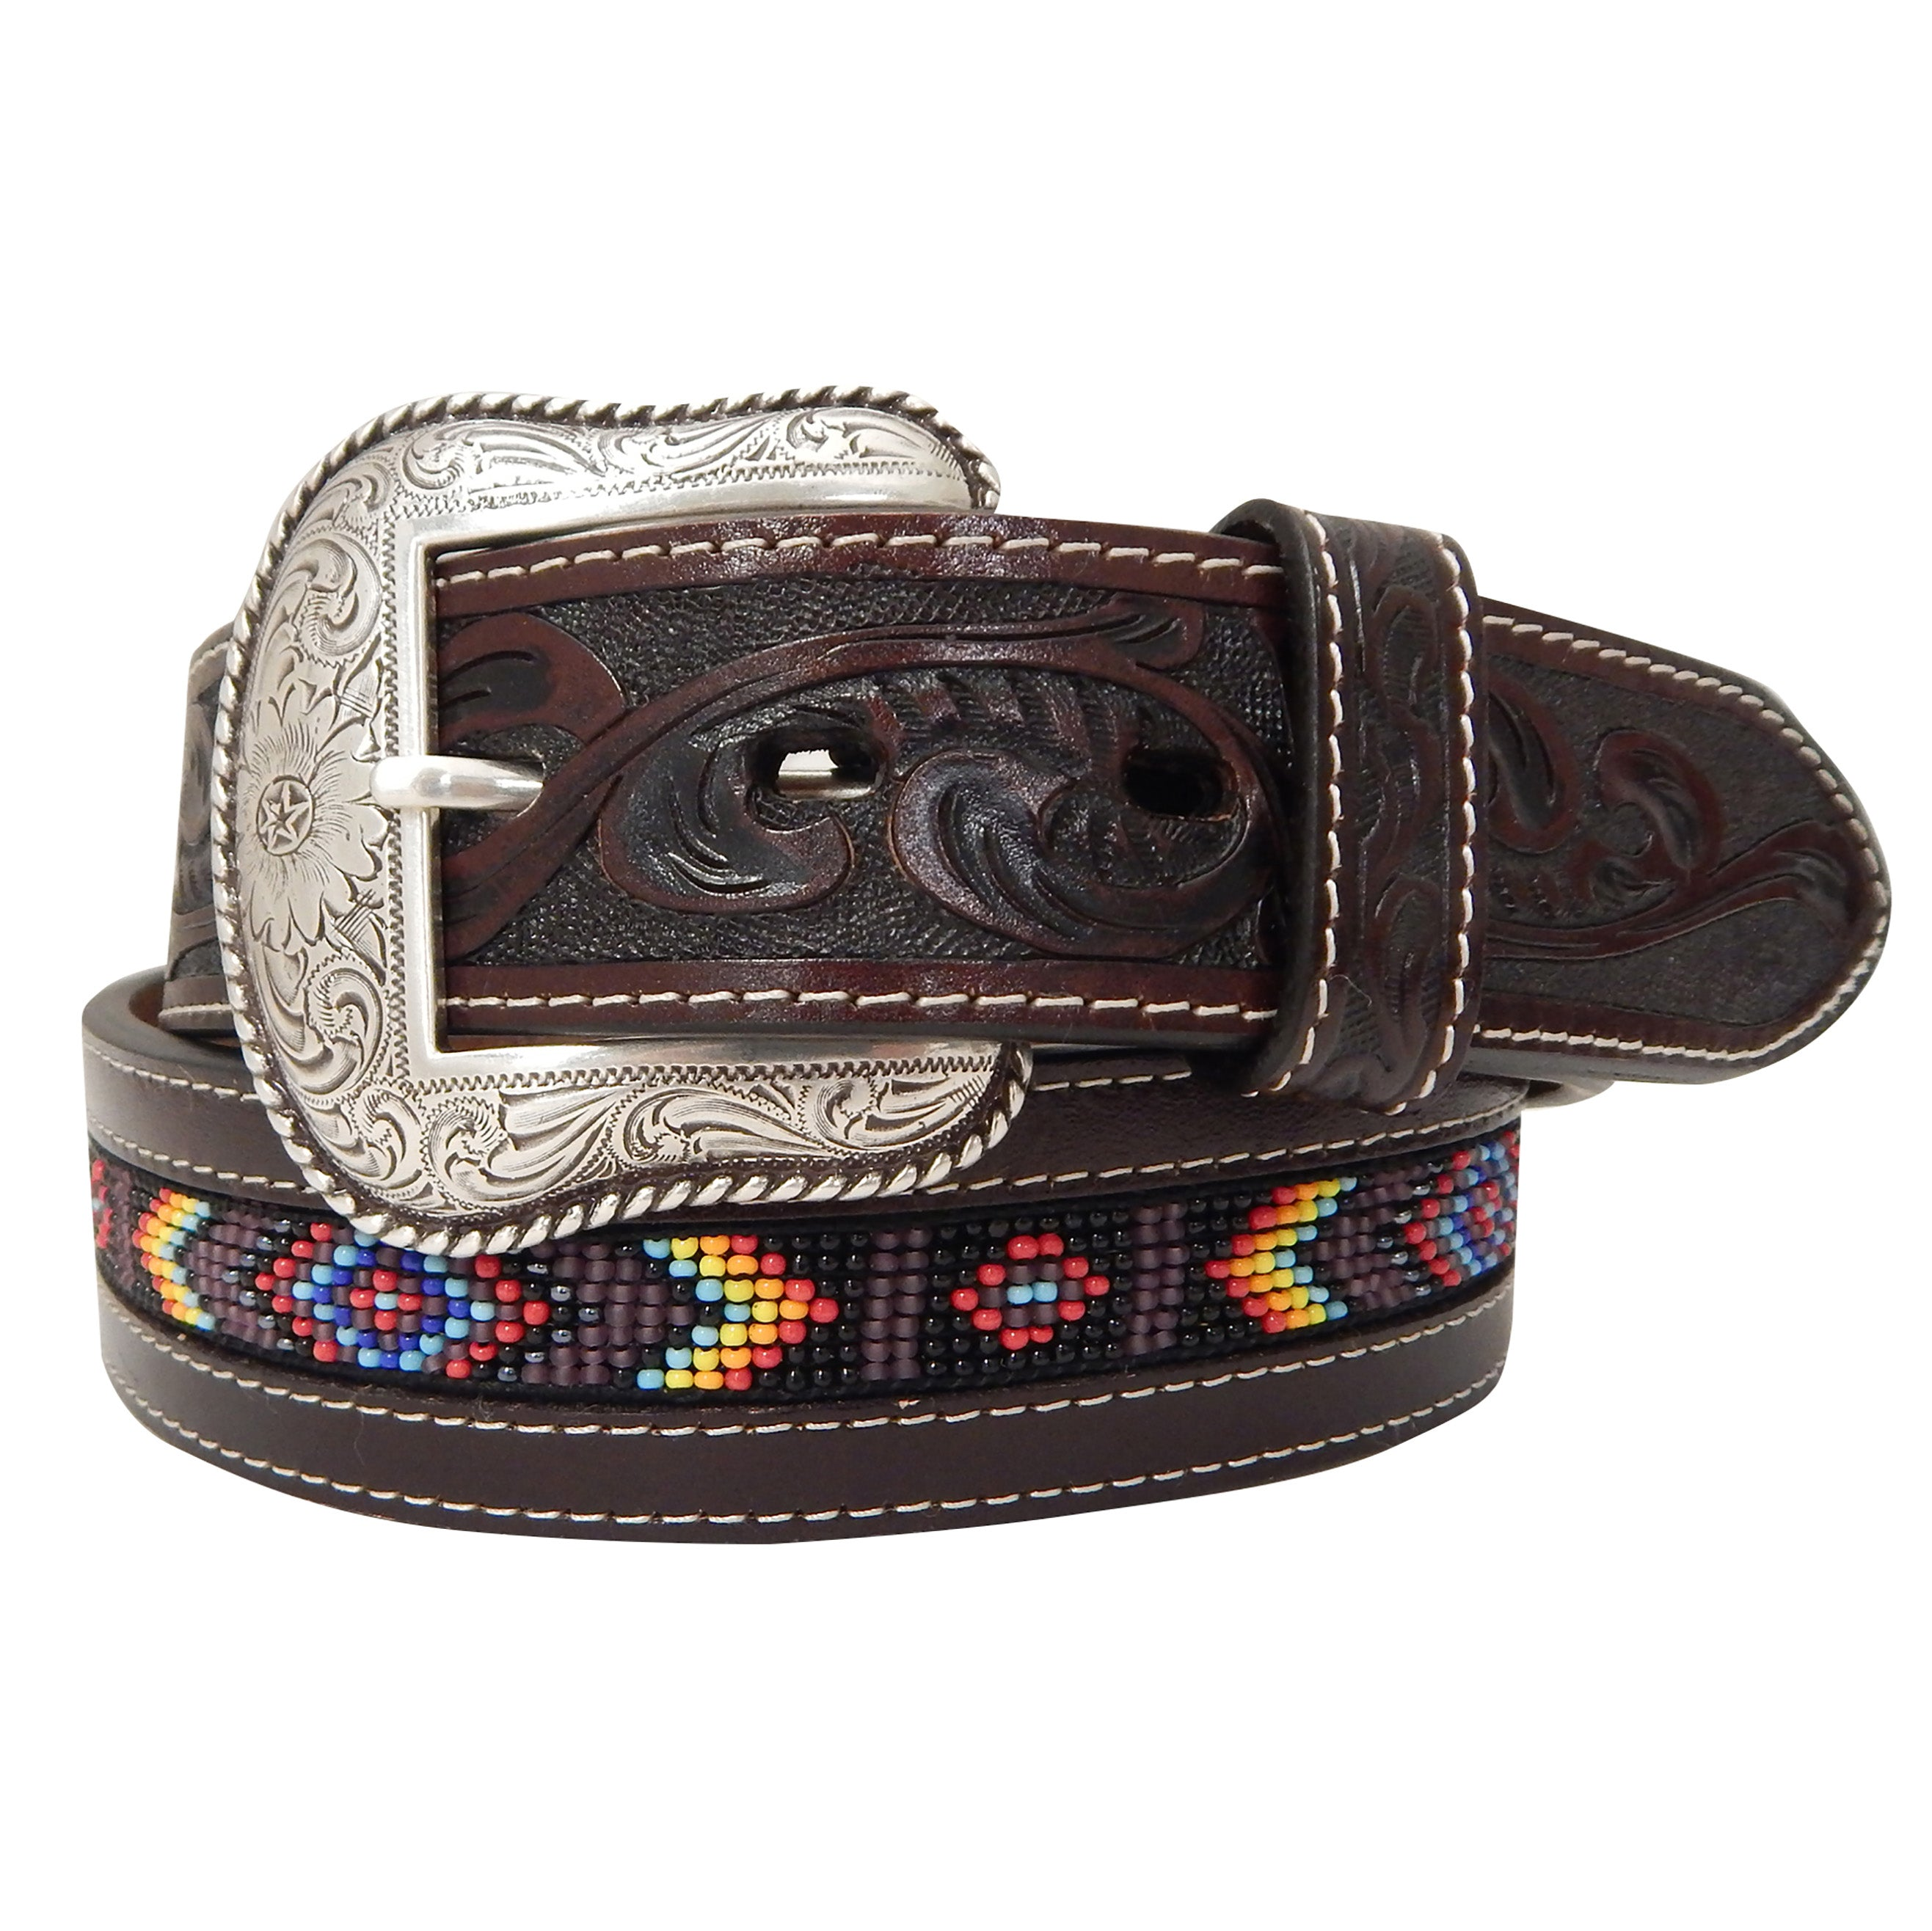 2a01013cf Roper Men's Brown Floral Beaded Belt – Western Edge, Ltd.